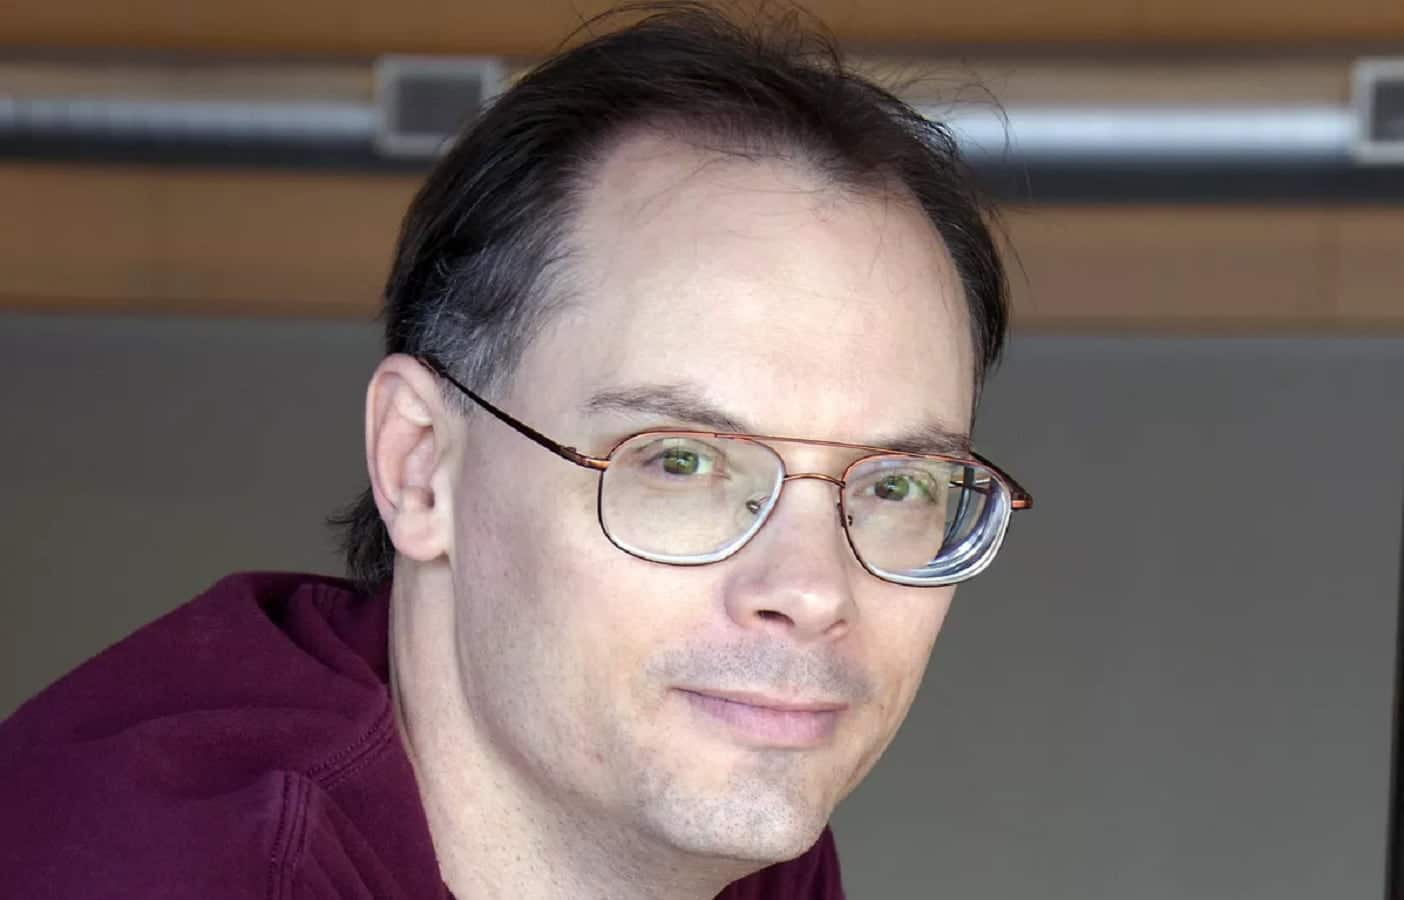 tim sweeney, founder of epic games